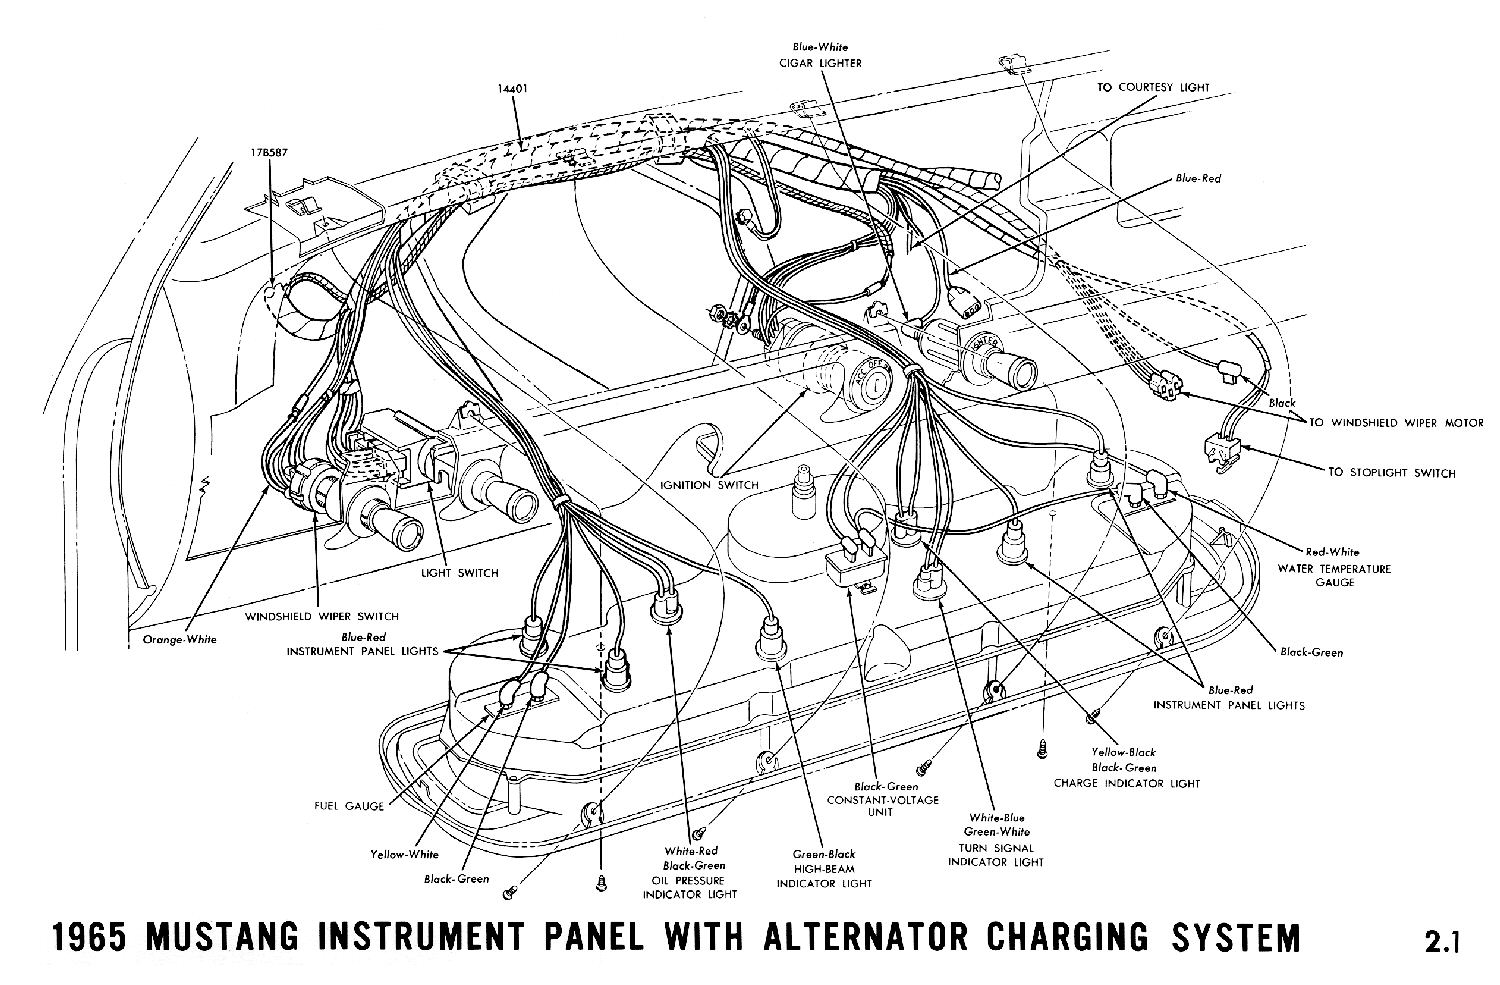 hight resolution of 1965 mustang wiring diagrams average joe restoration 1965 mustang wiring diagram on 1969 mustang fastback fuse box diagram